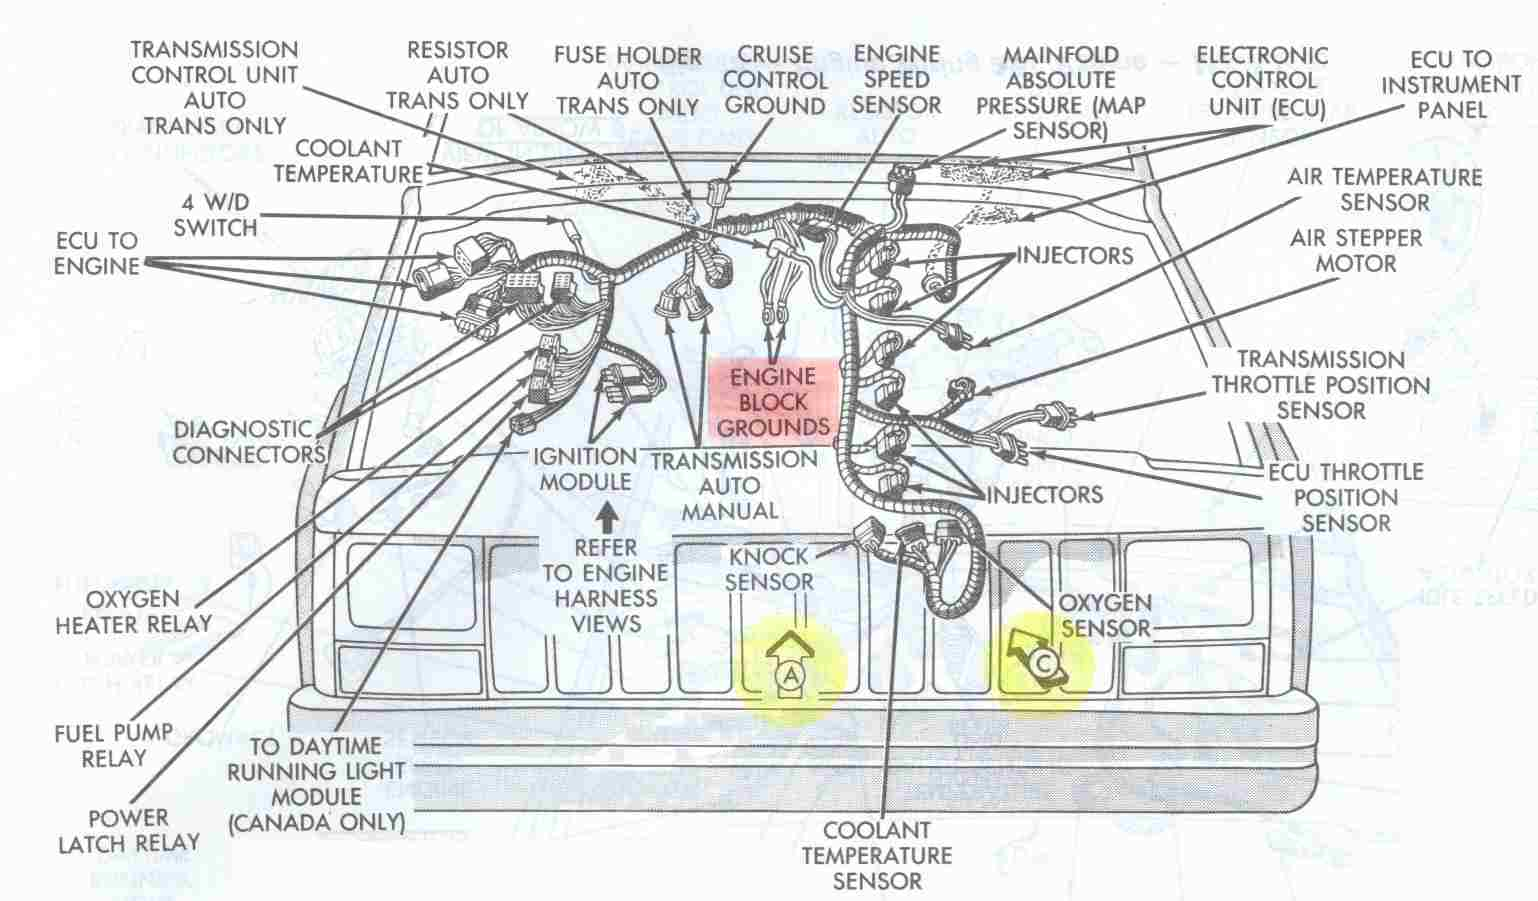 Electrical_Engine_Ground_Points_Overview jeep cherokee electrical diagnosing erratic behavior of engine 98 jeep cherokee wiring diagram at soozxer.org